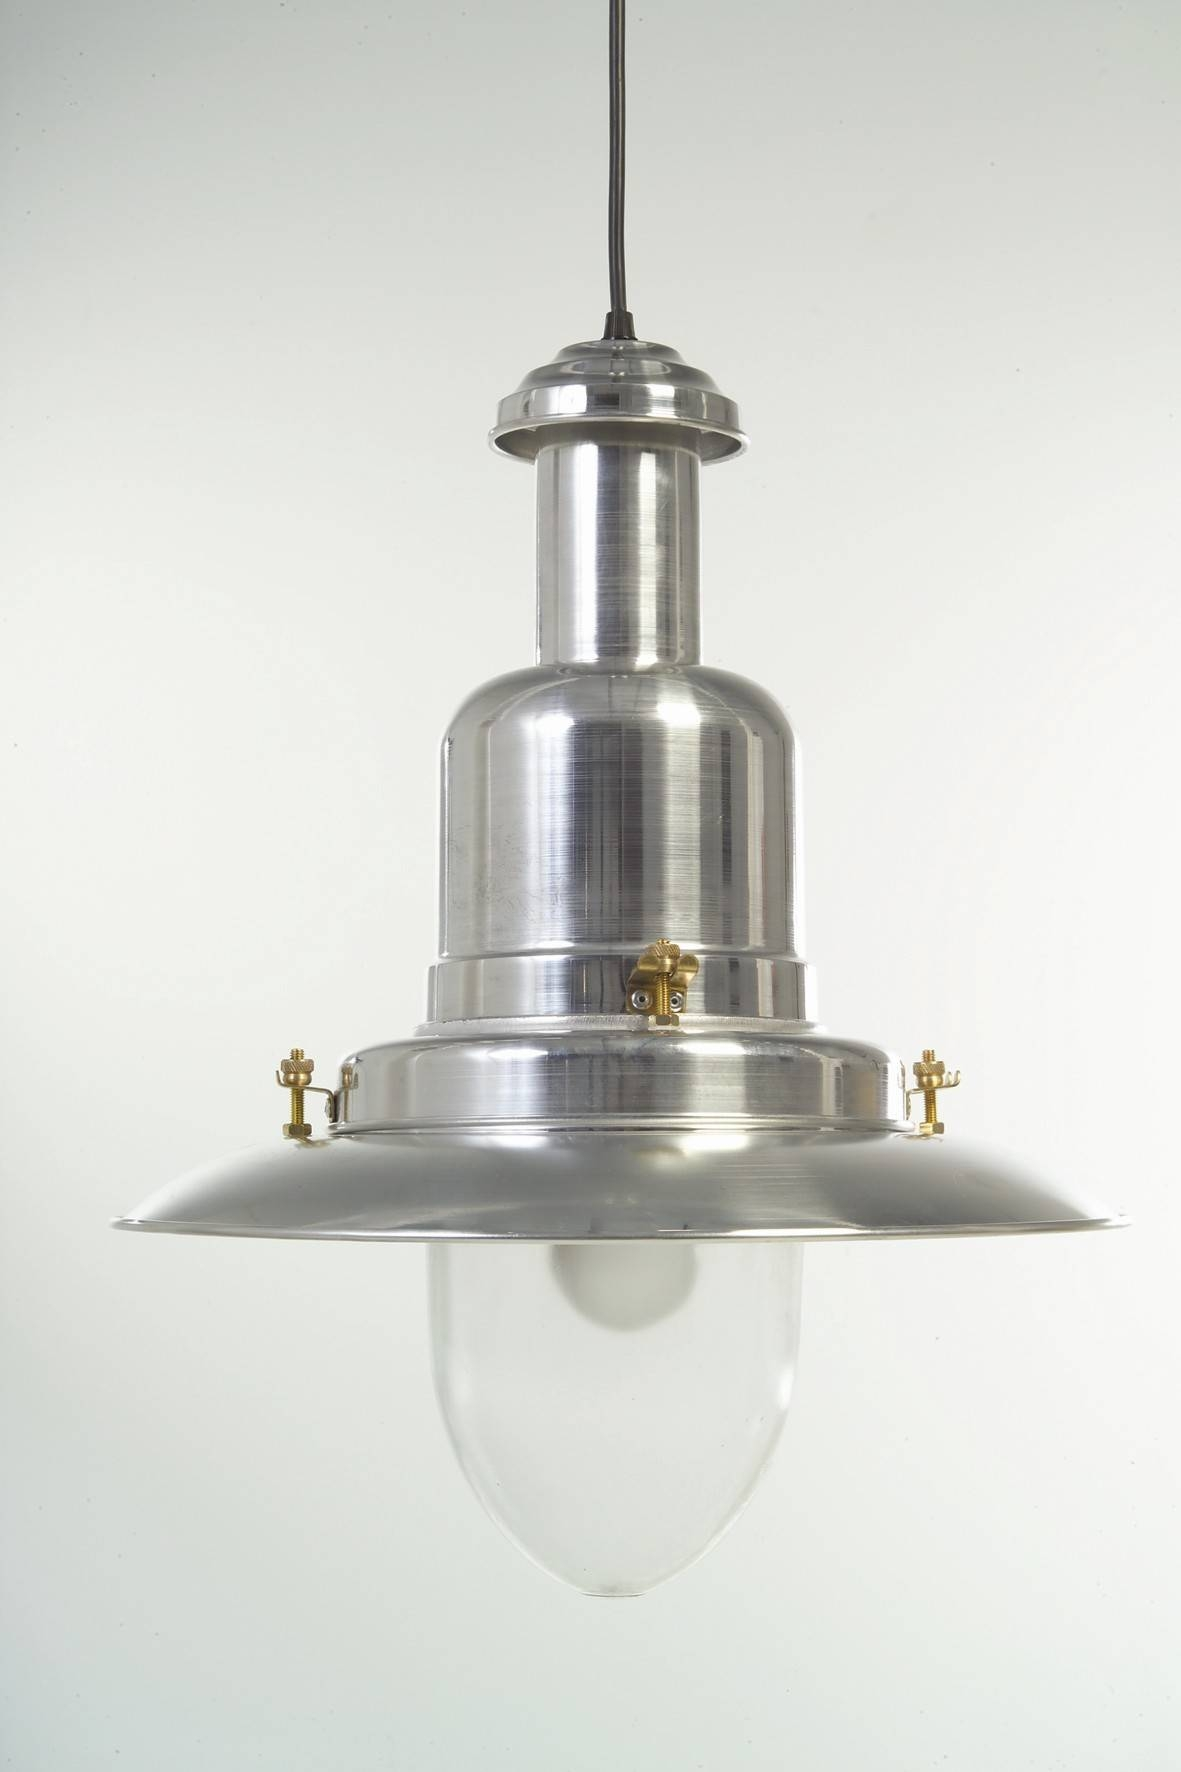 Wall Lights: Outstanding Stainless Steel Light Fixtures 2017 intended for Stainless Pendant Lights (Image 14 of 15)